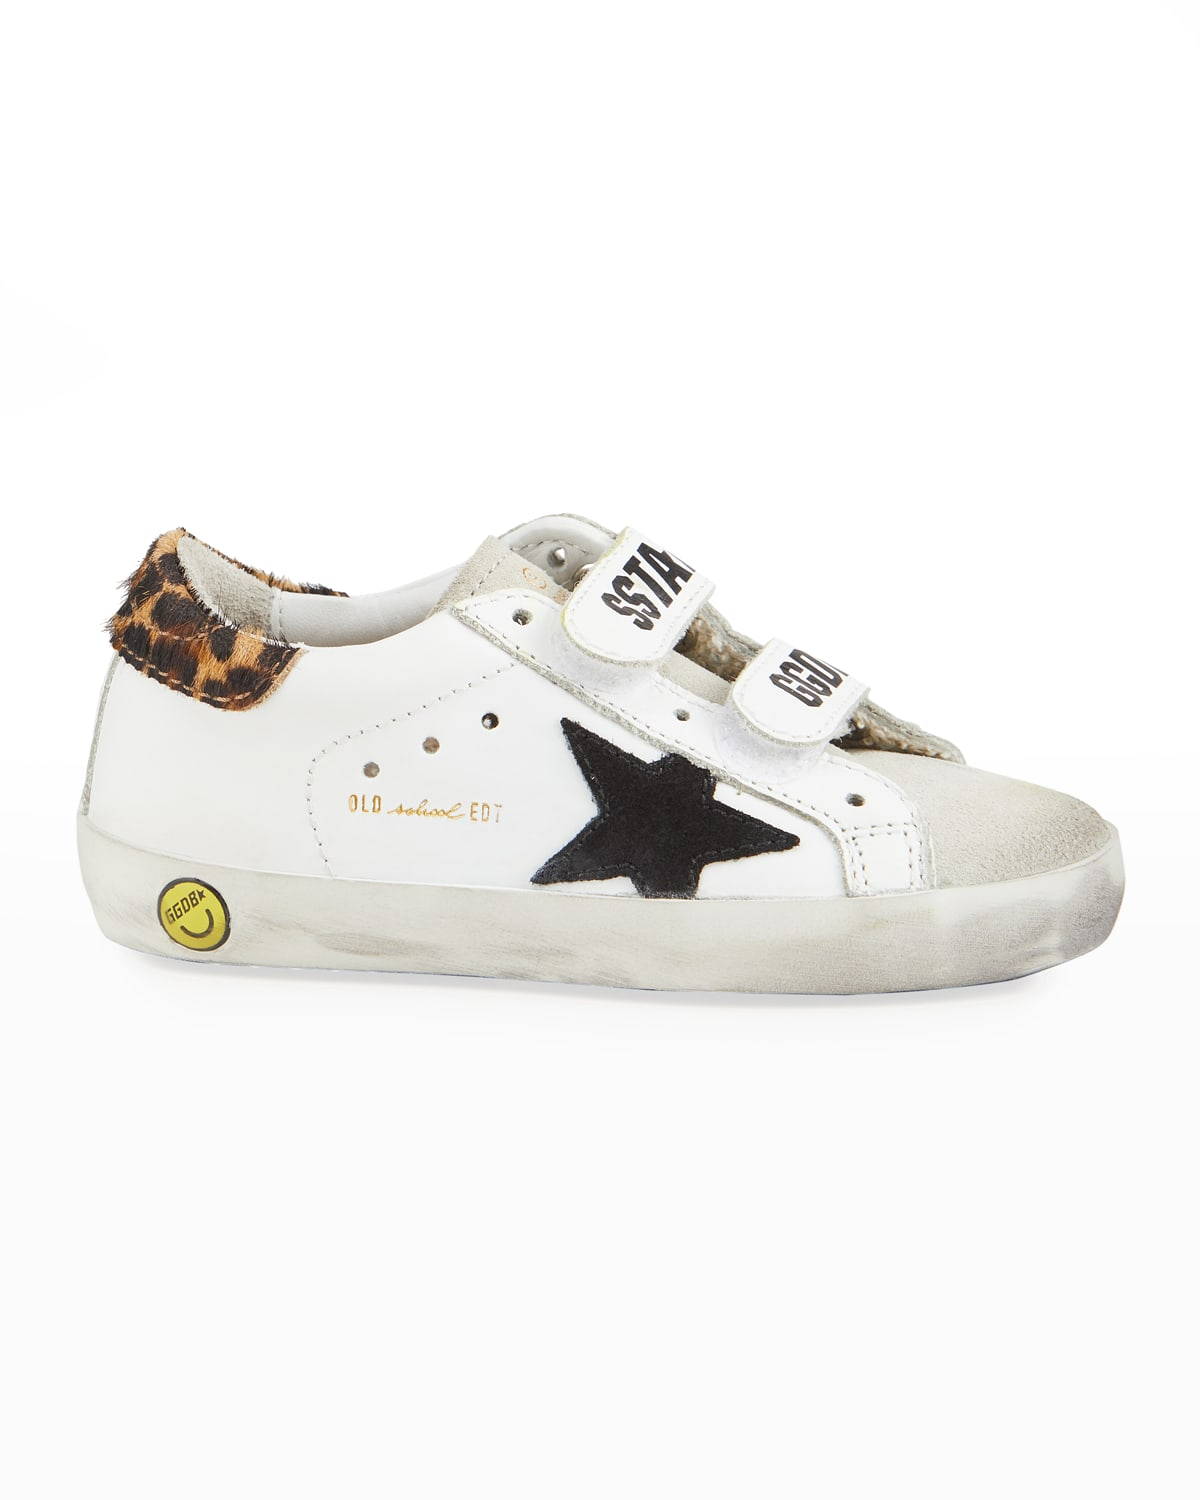 Girl's Old School Leather Sneakers